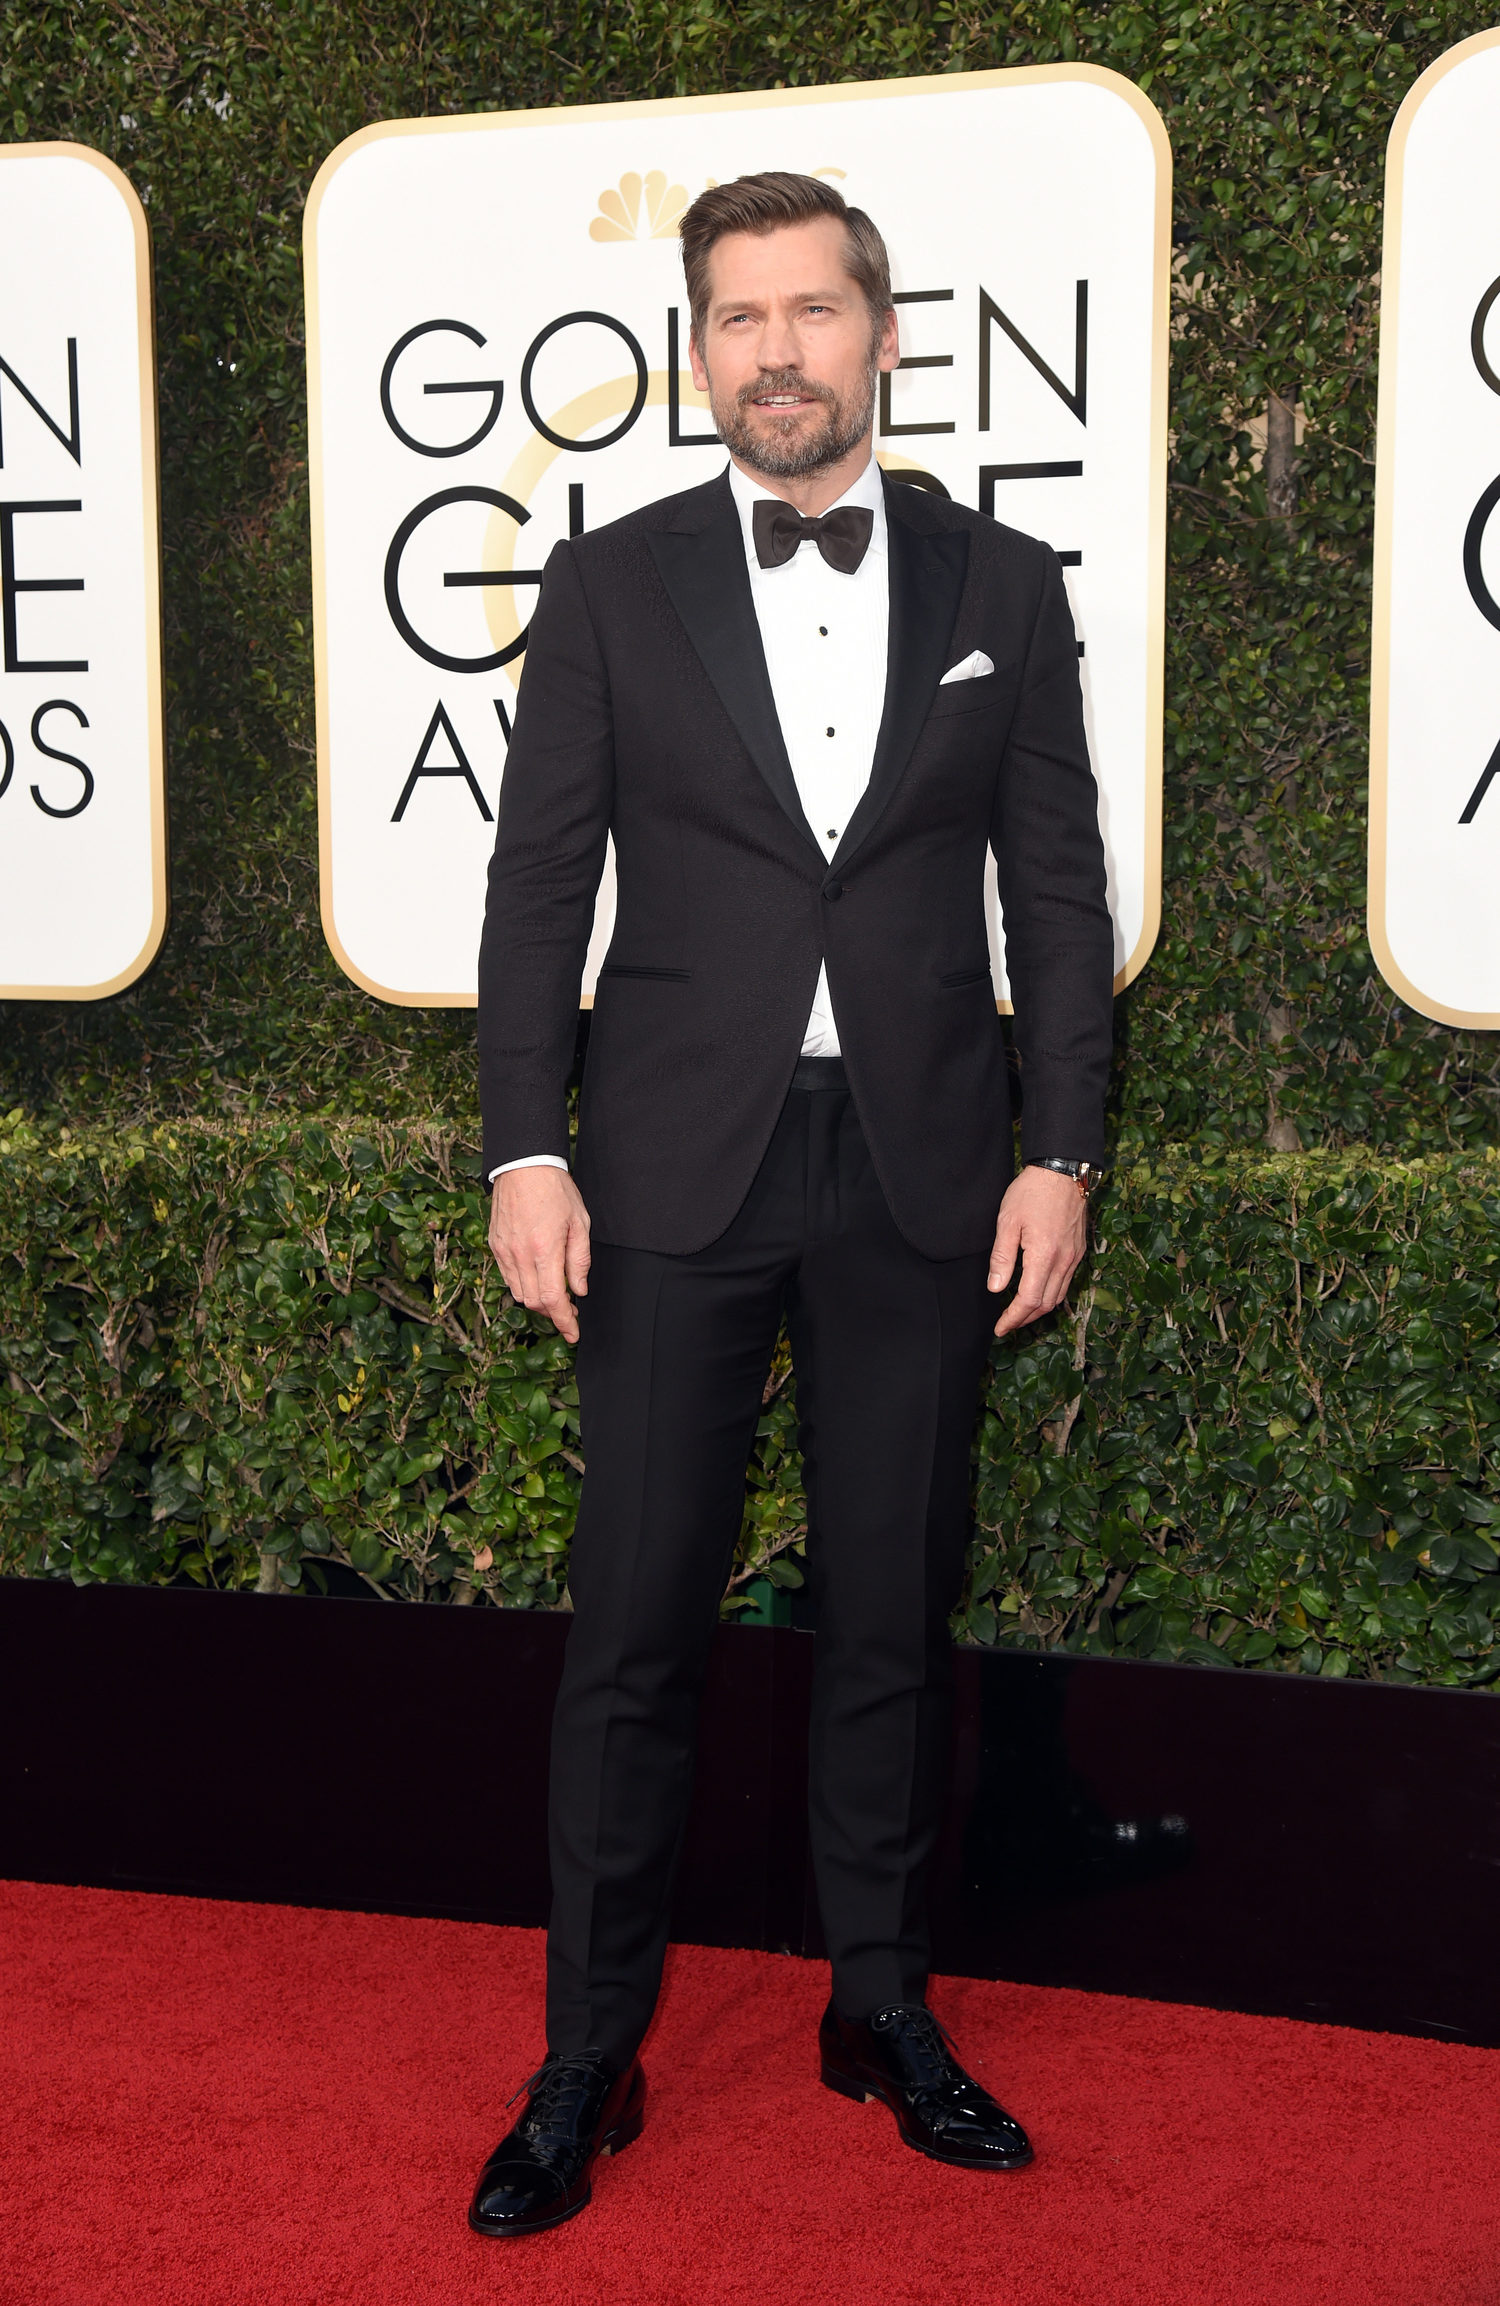 nikolaj-coster-waldau at the golden globes